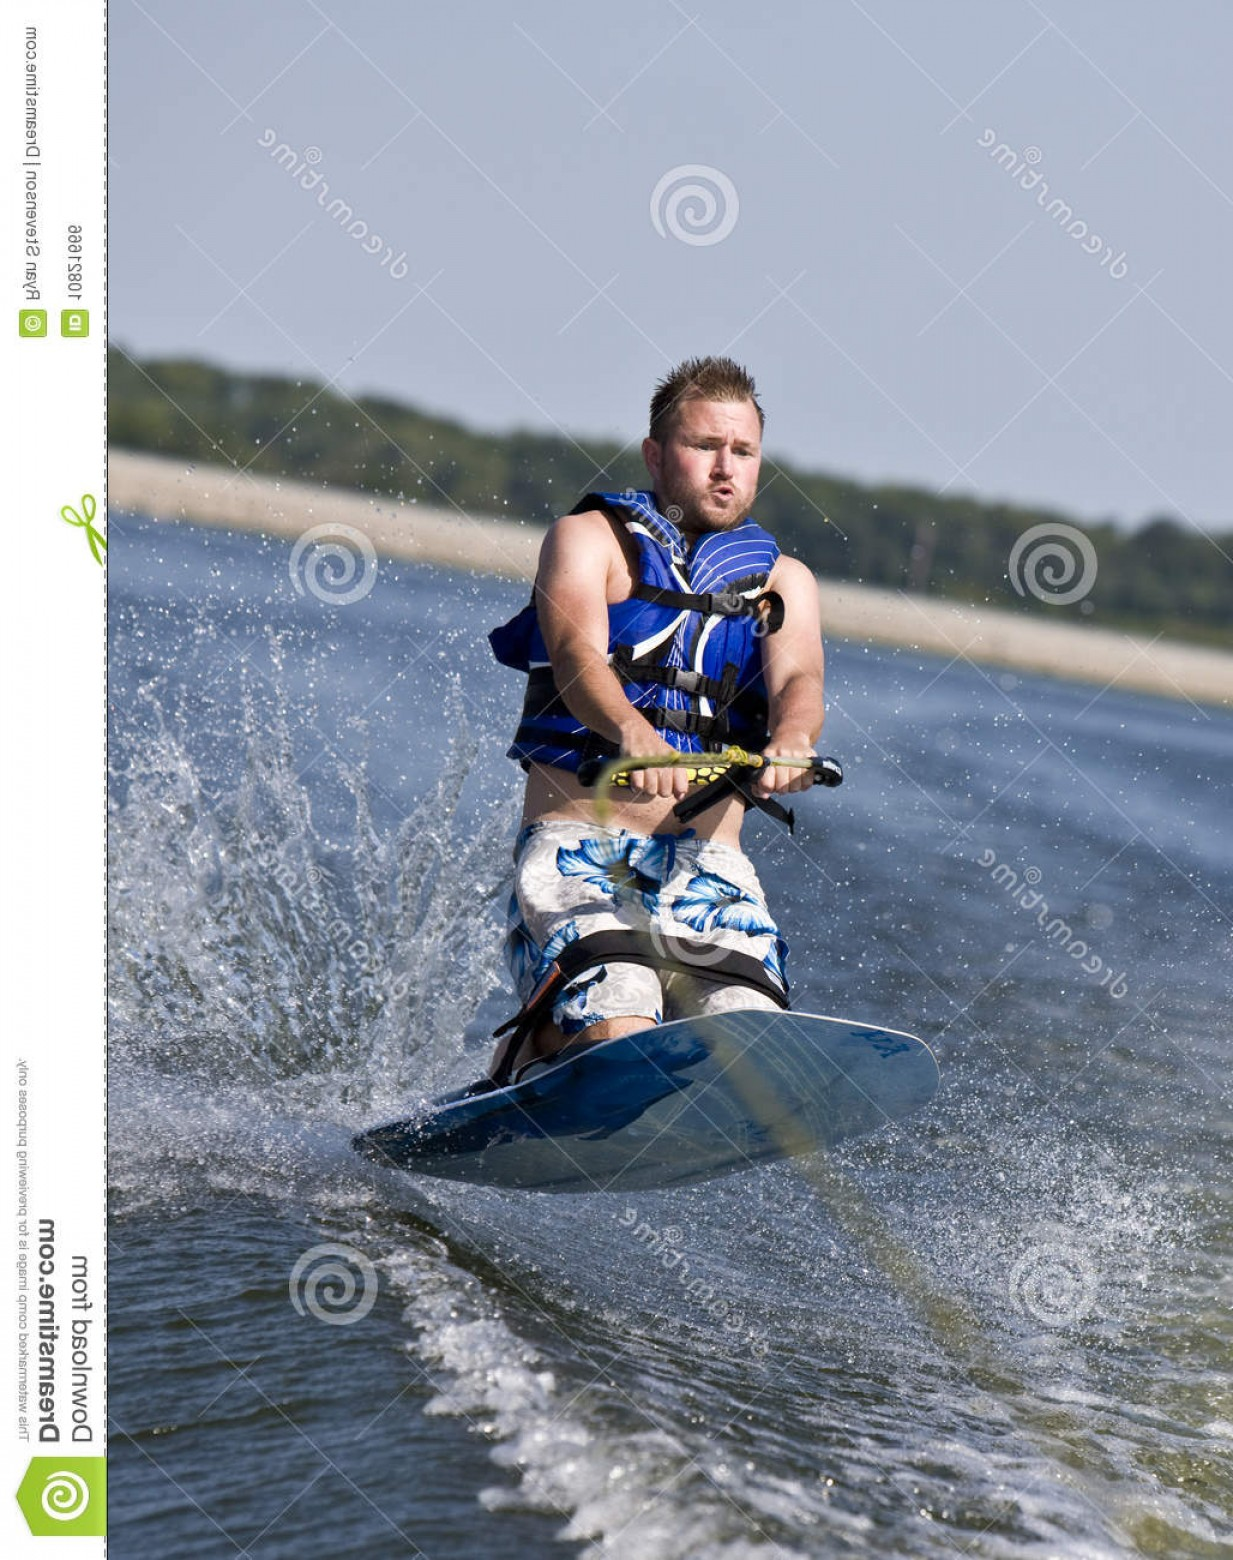 Knee Board Vector: Royalty Free Stock Image Knee Boarding Image